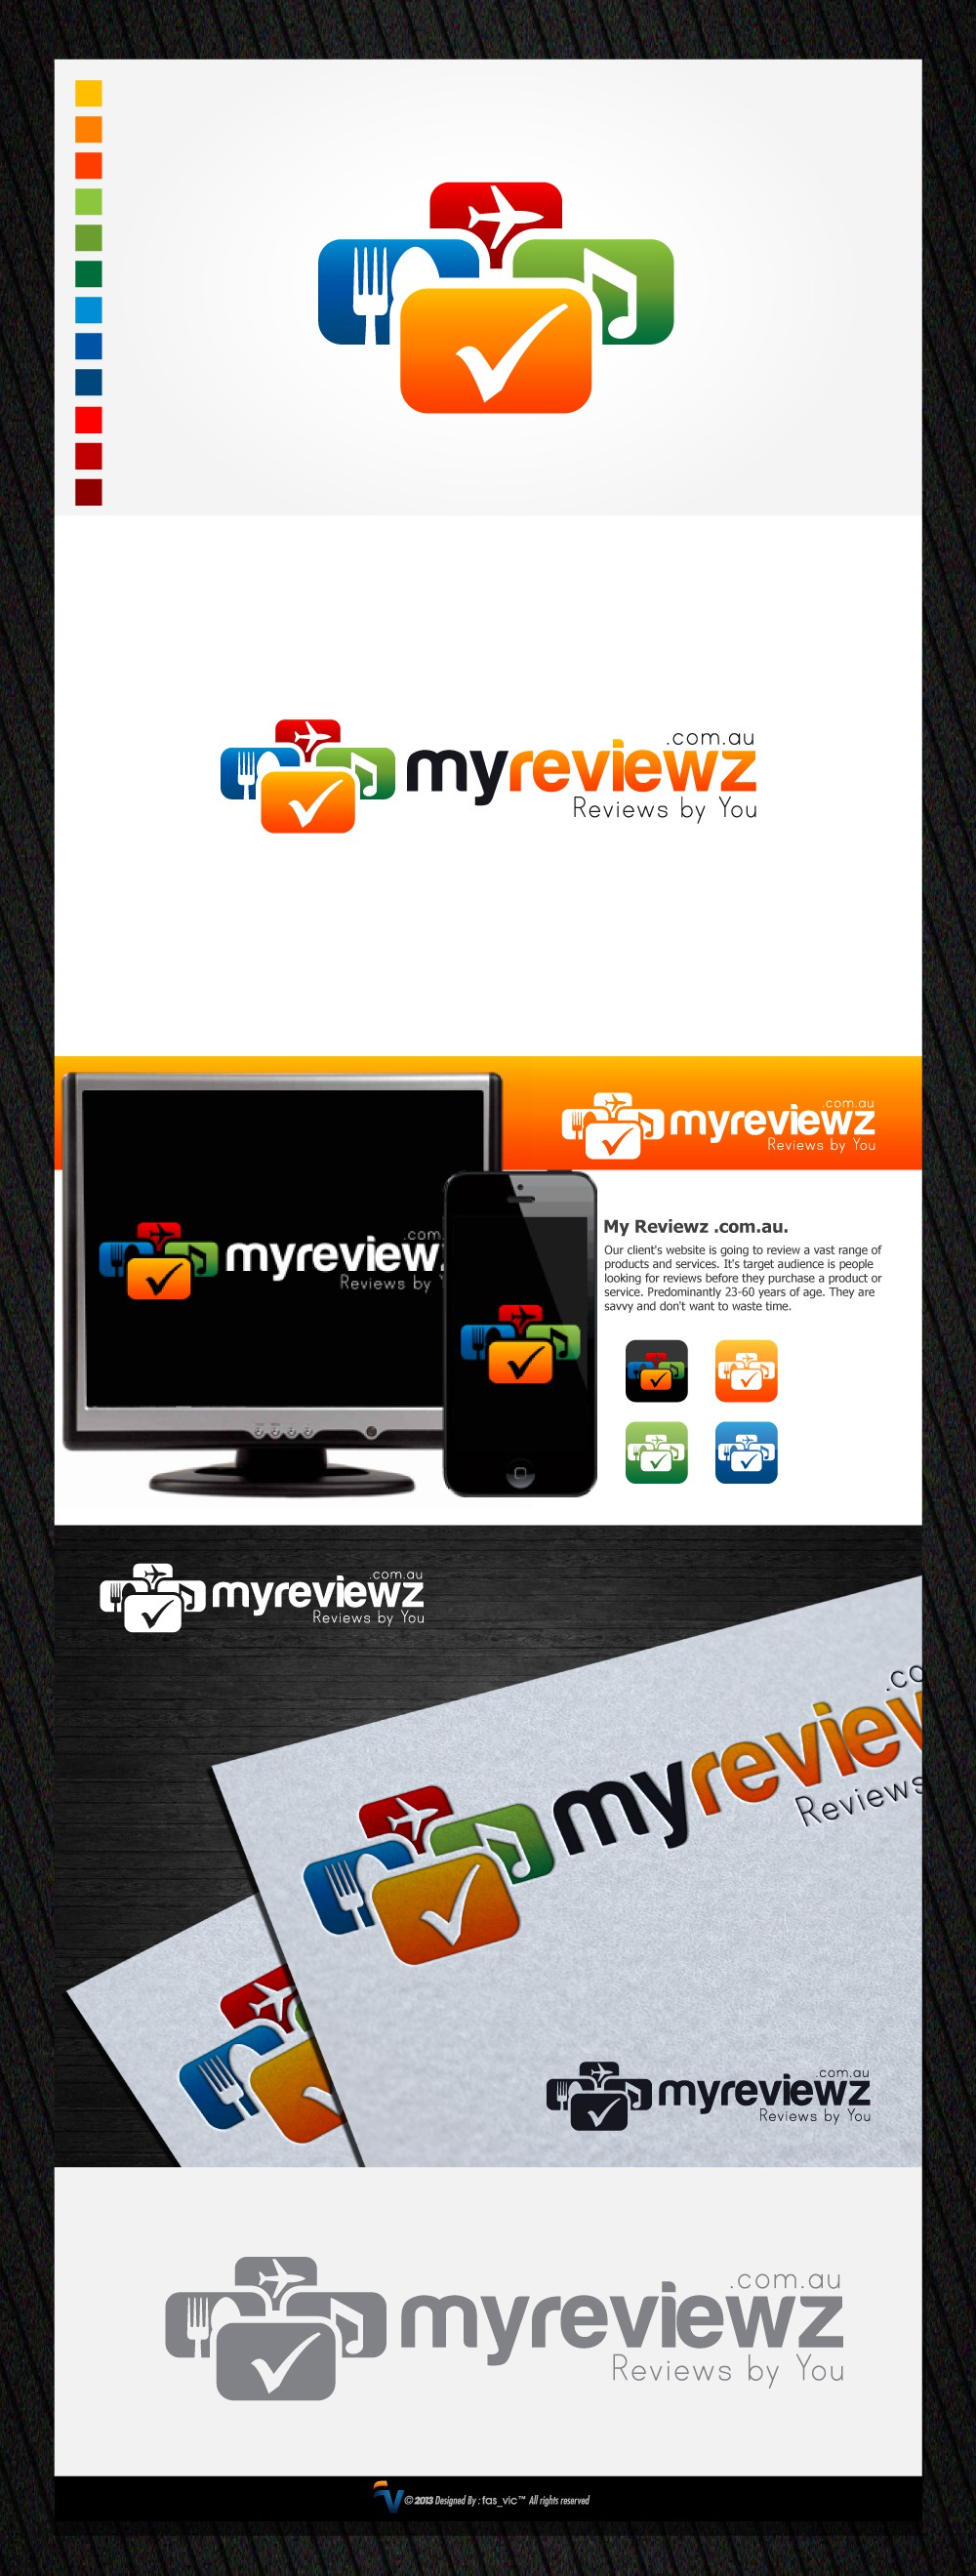 Create the next logo for My Reviewz